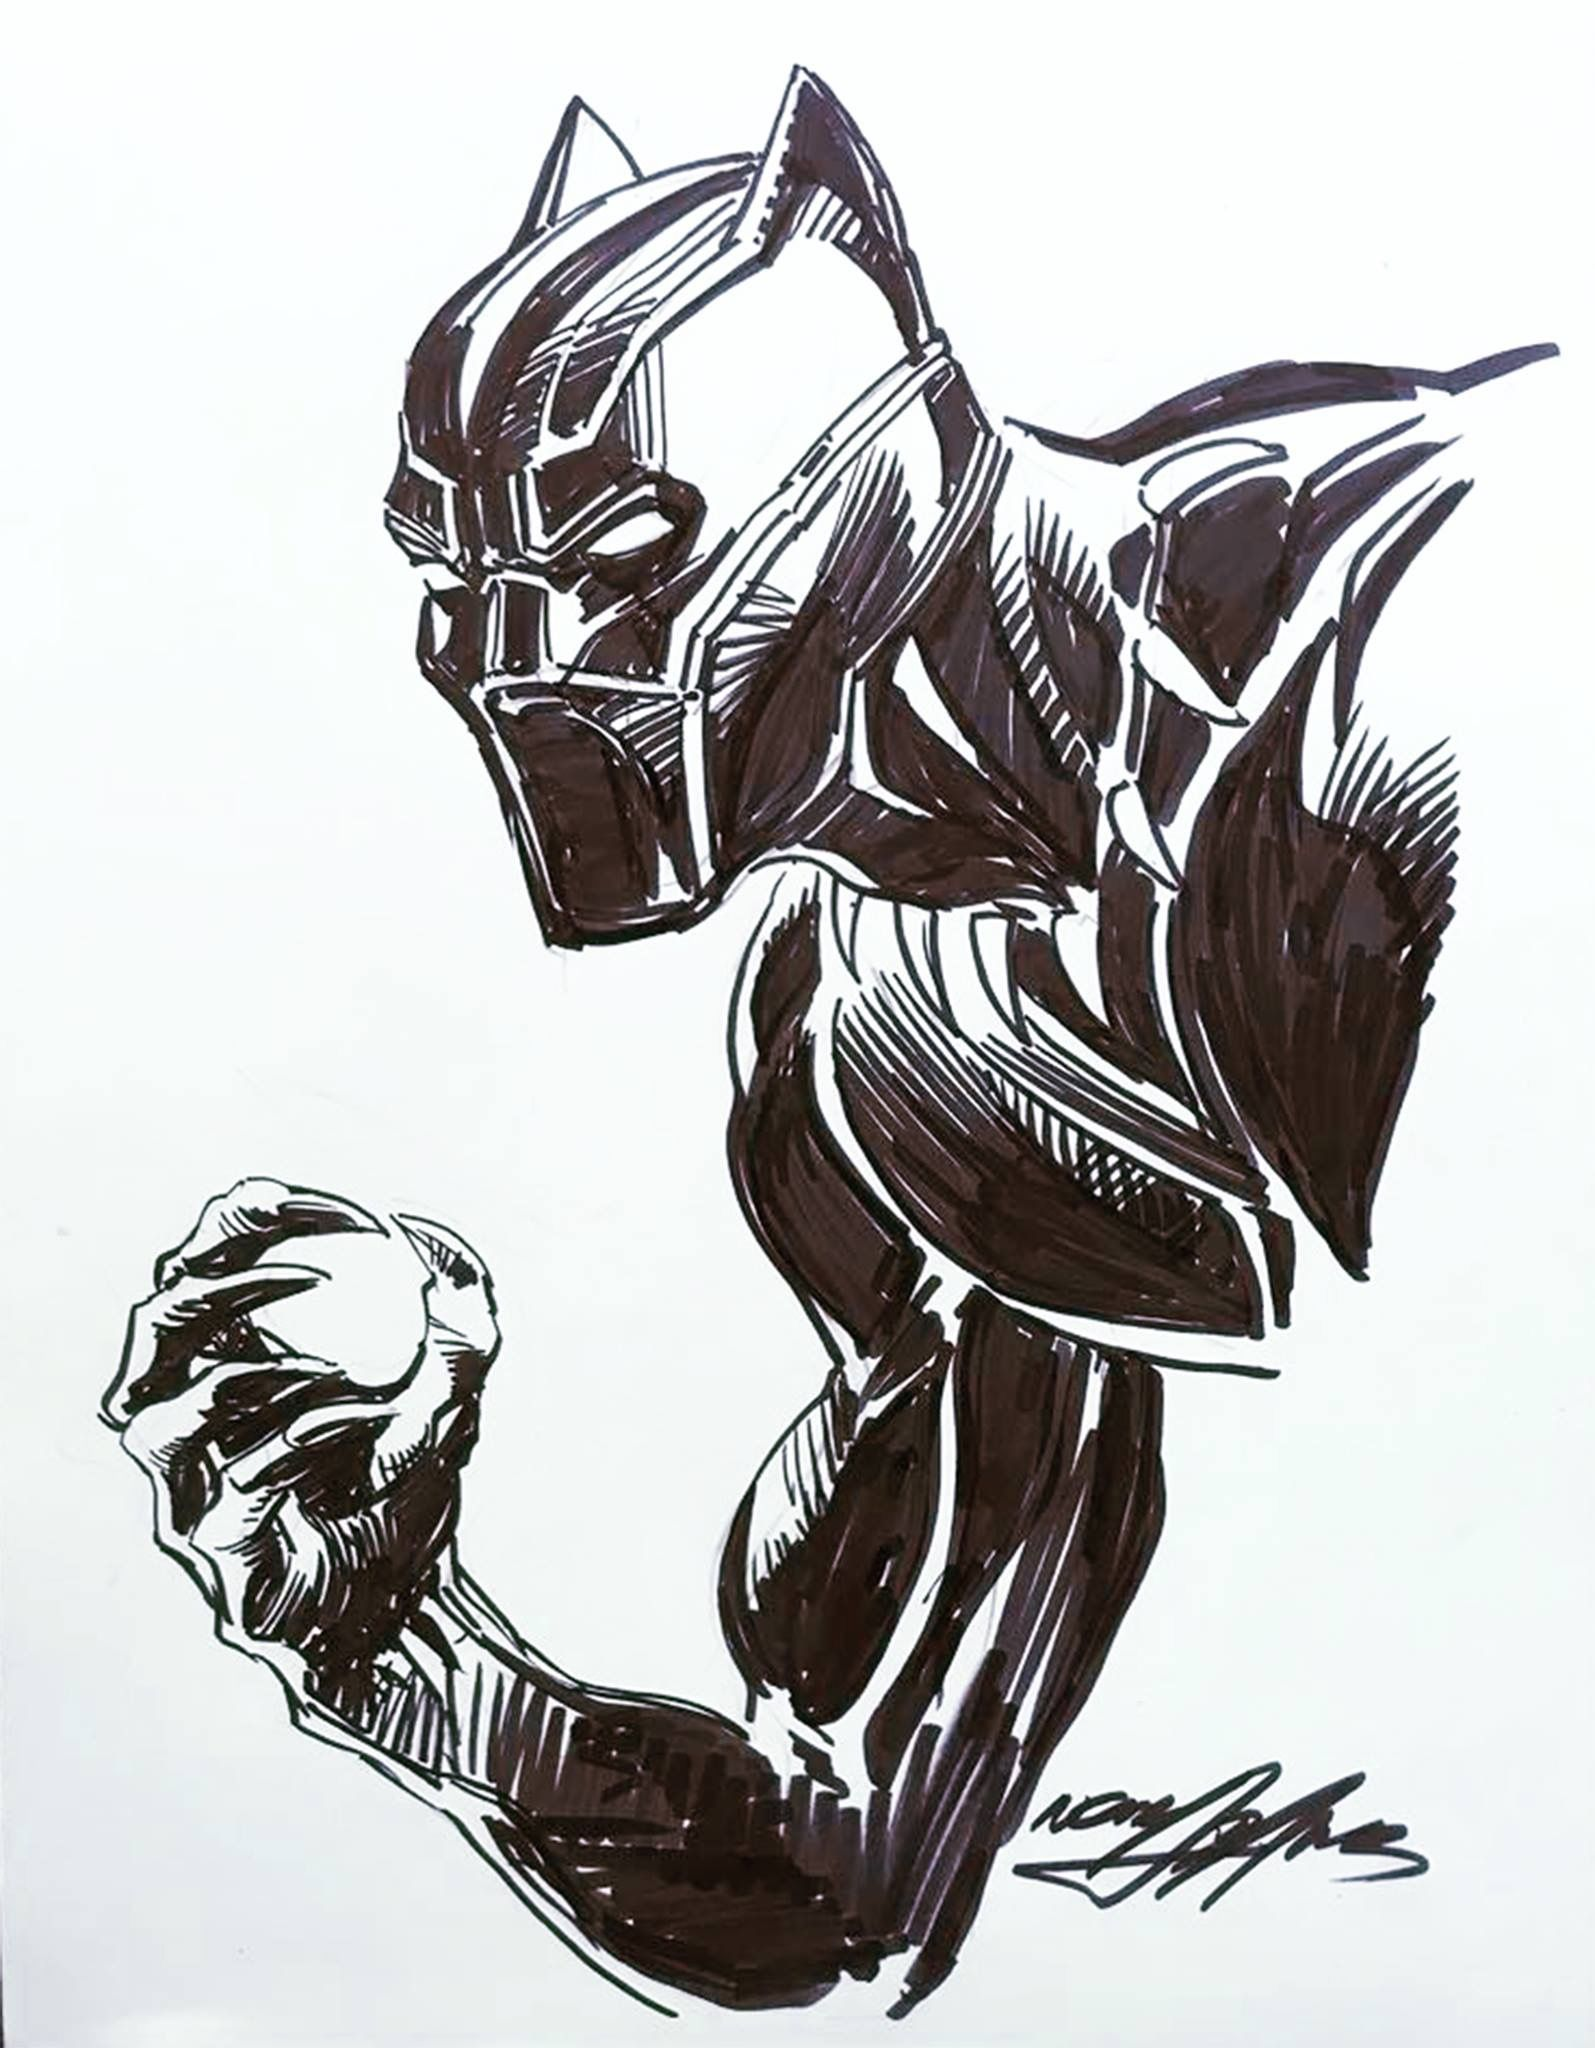 Black Panther Neal Adams Convention Sketch 2018 Avengers Drawings Black Panther Marvel Black Panther Art